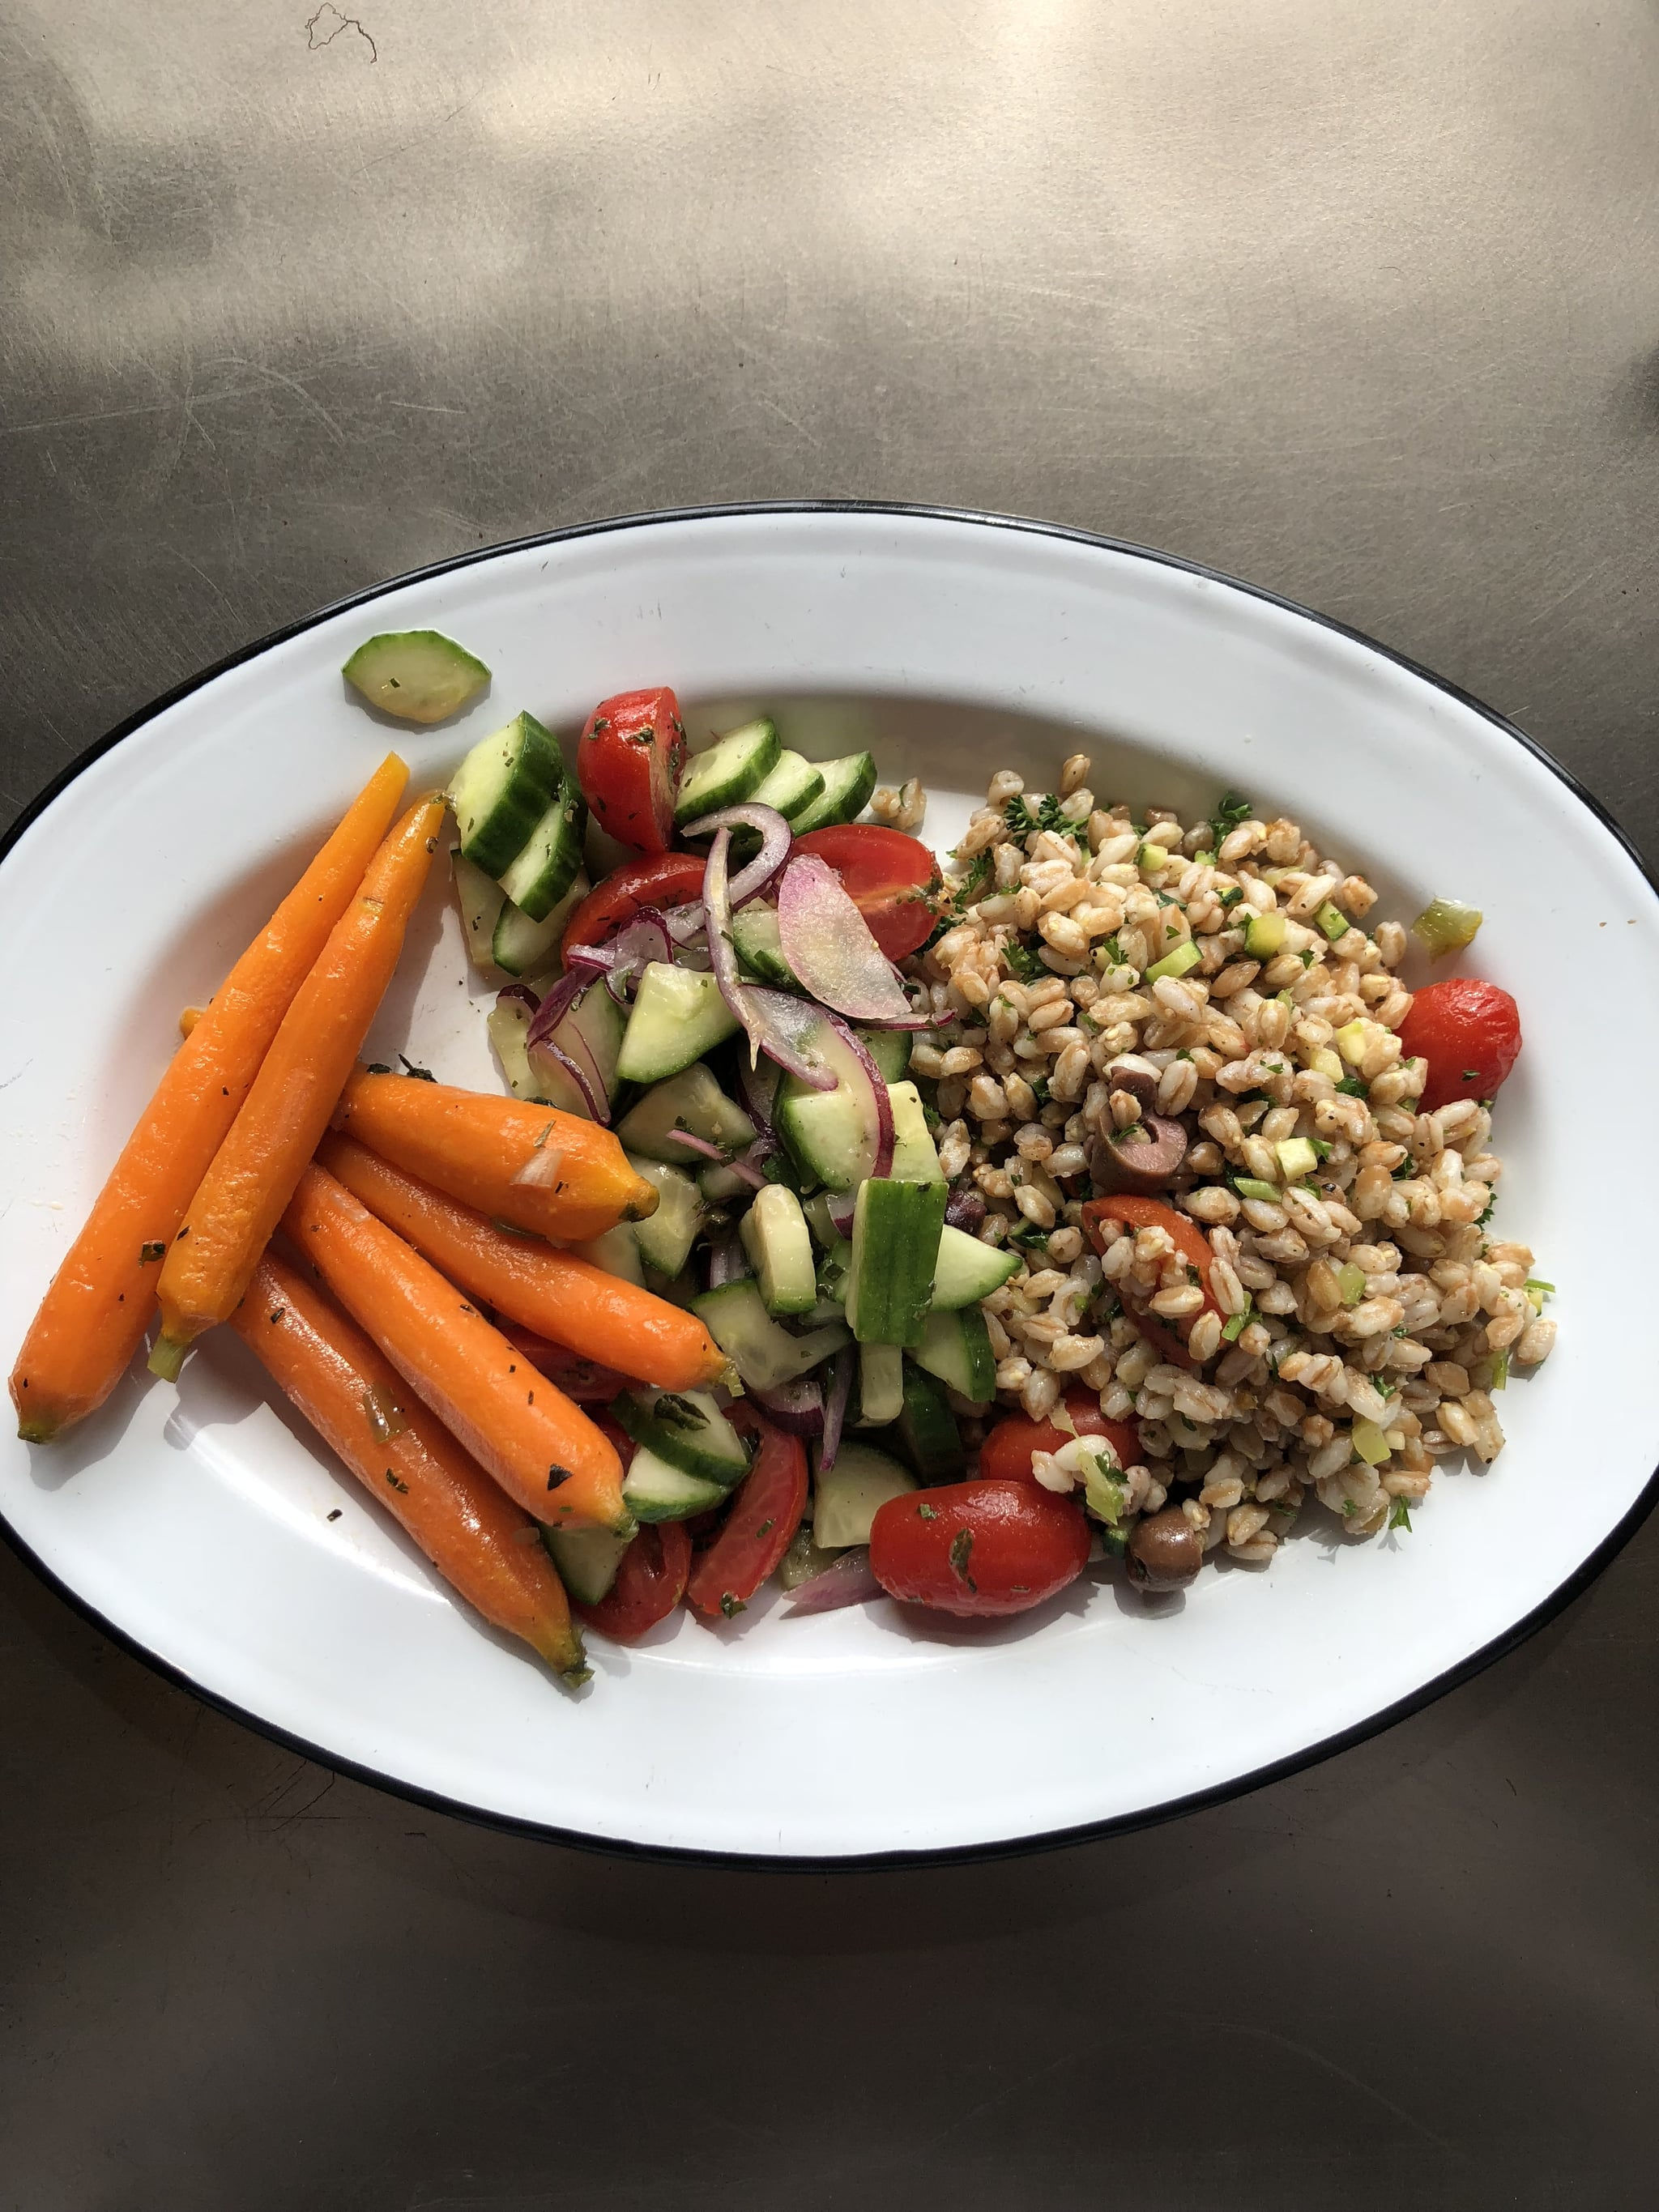 Meal Two - Farro, cumcumber salad and carrots. I definitely did not want to eat this.